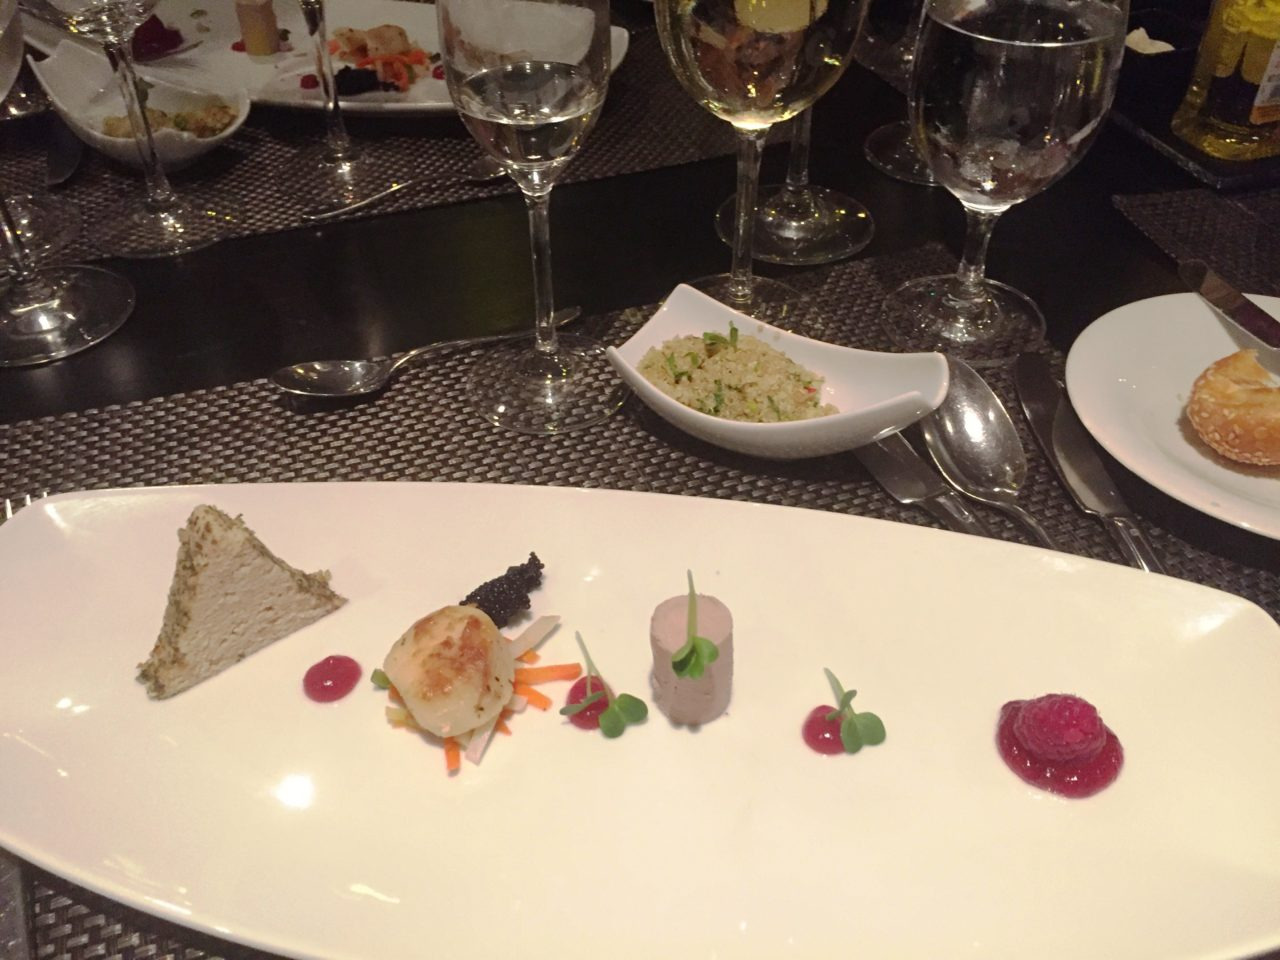 Appetizer plate of the Tasting Menu at Chef's Table restaurant of AMALegro (Paris and Normandie AMAWaterways Cruise)